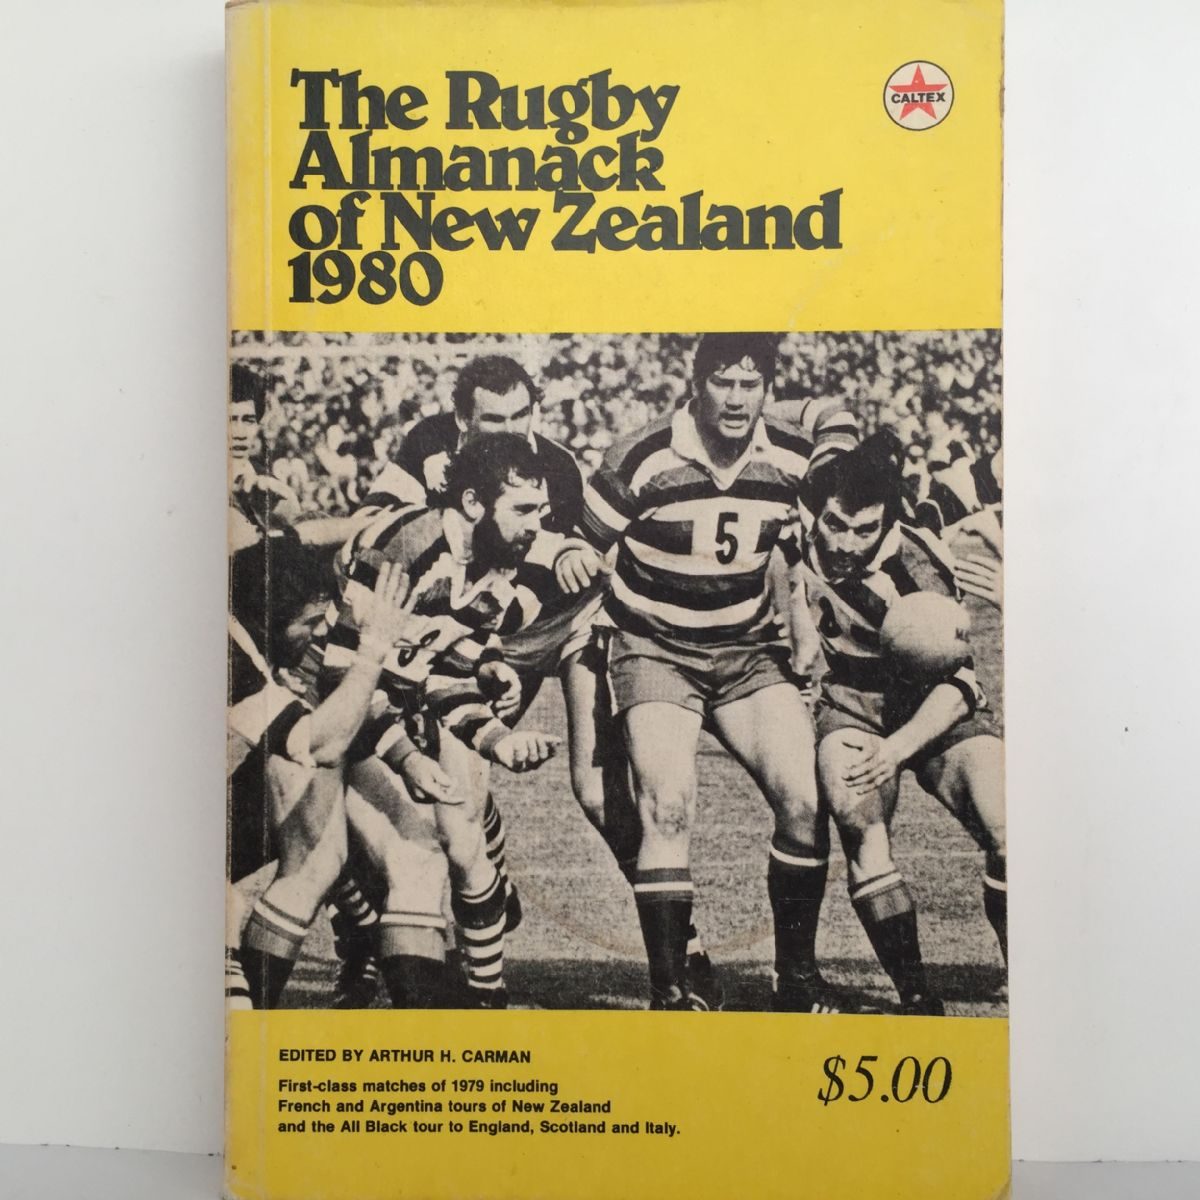 The Rugby Almanack of New Zealand 1980